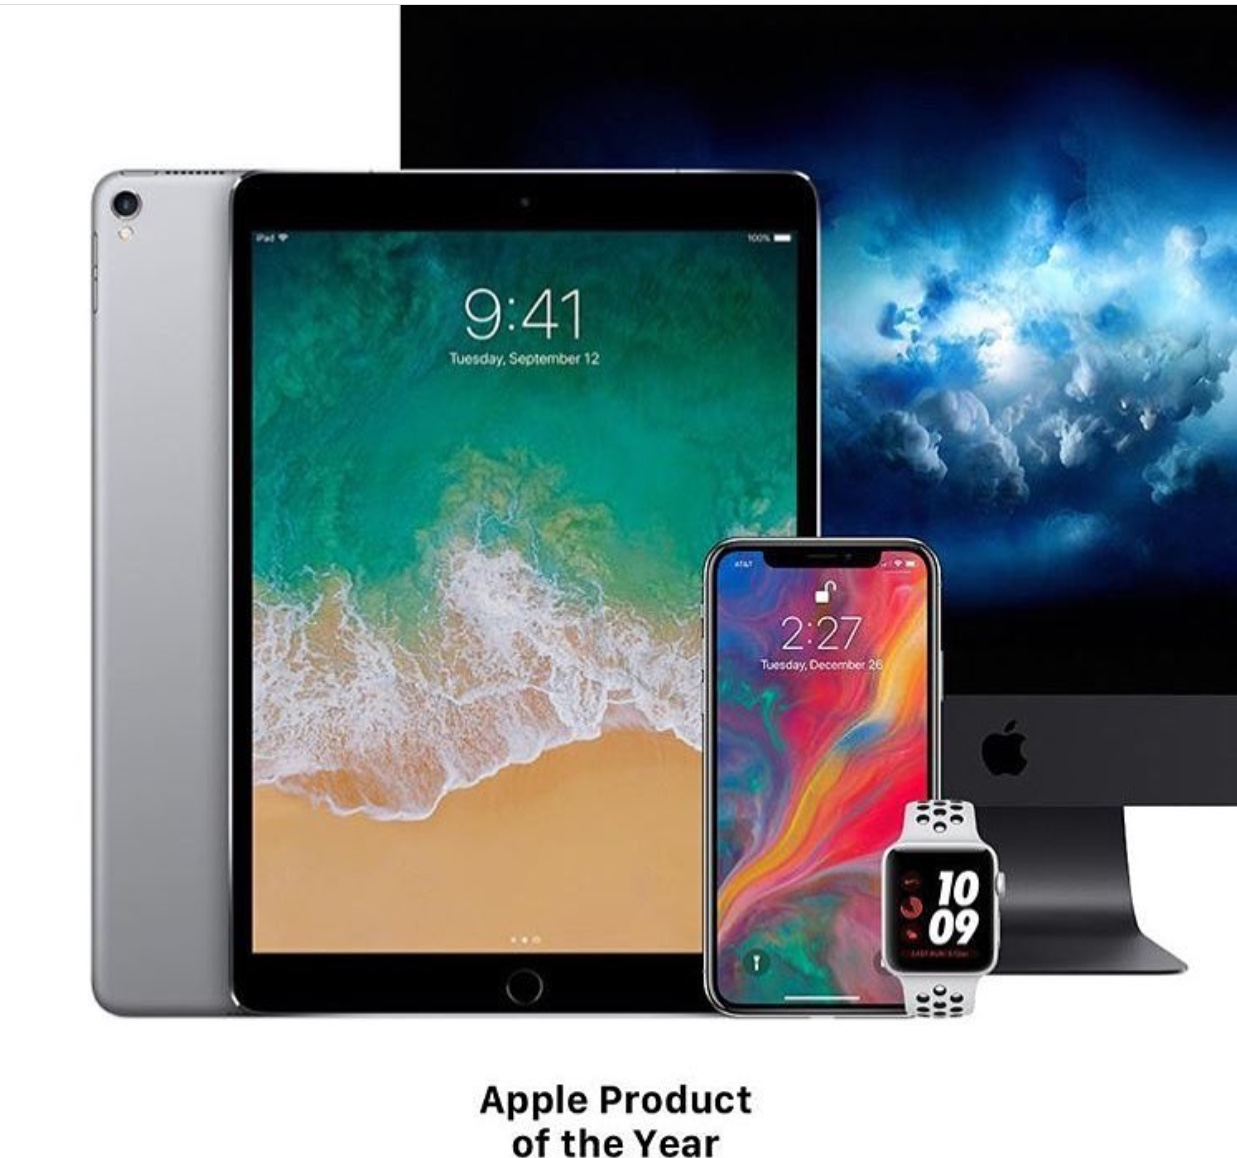 All Apple products